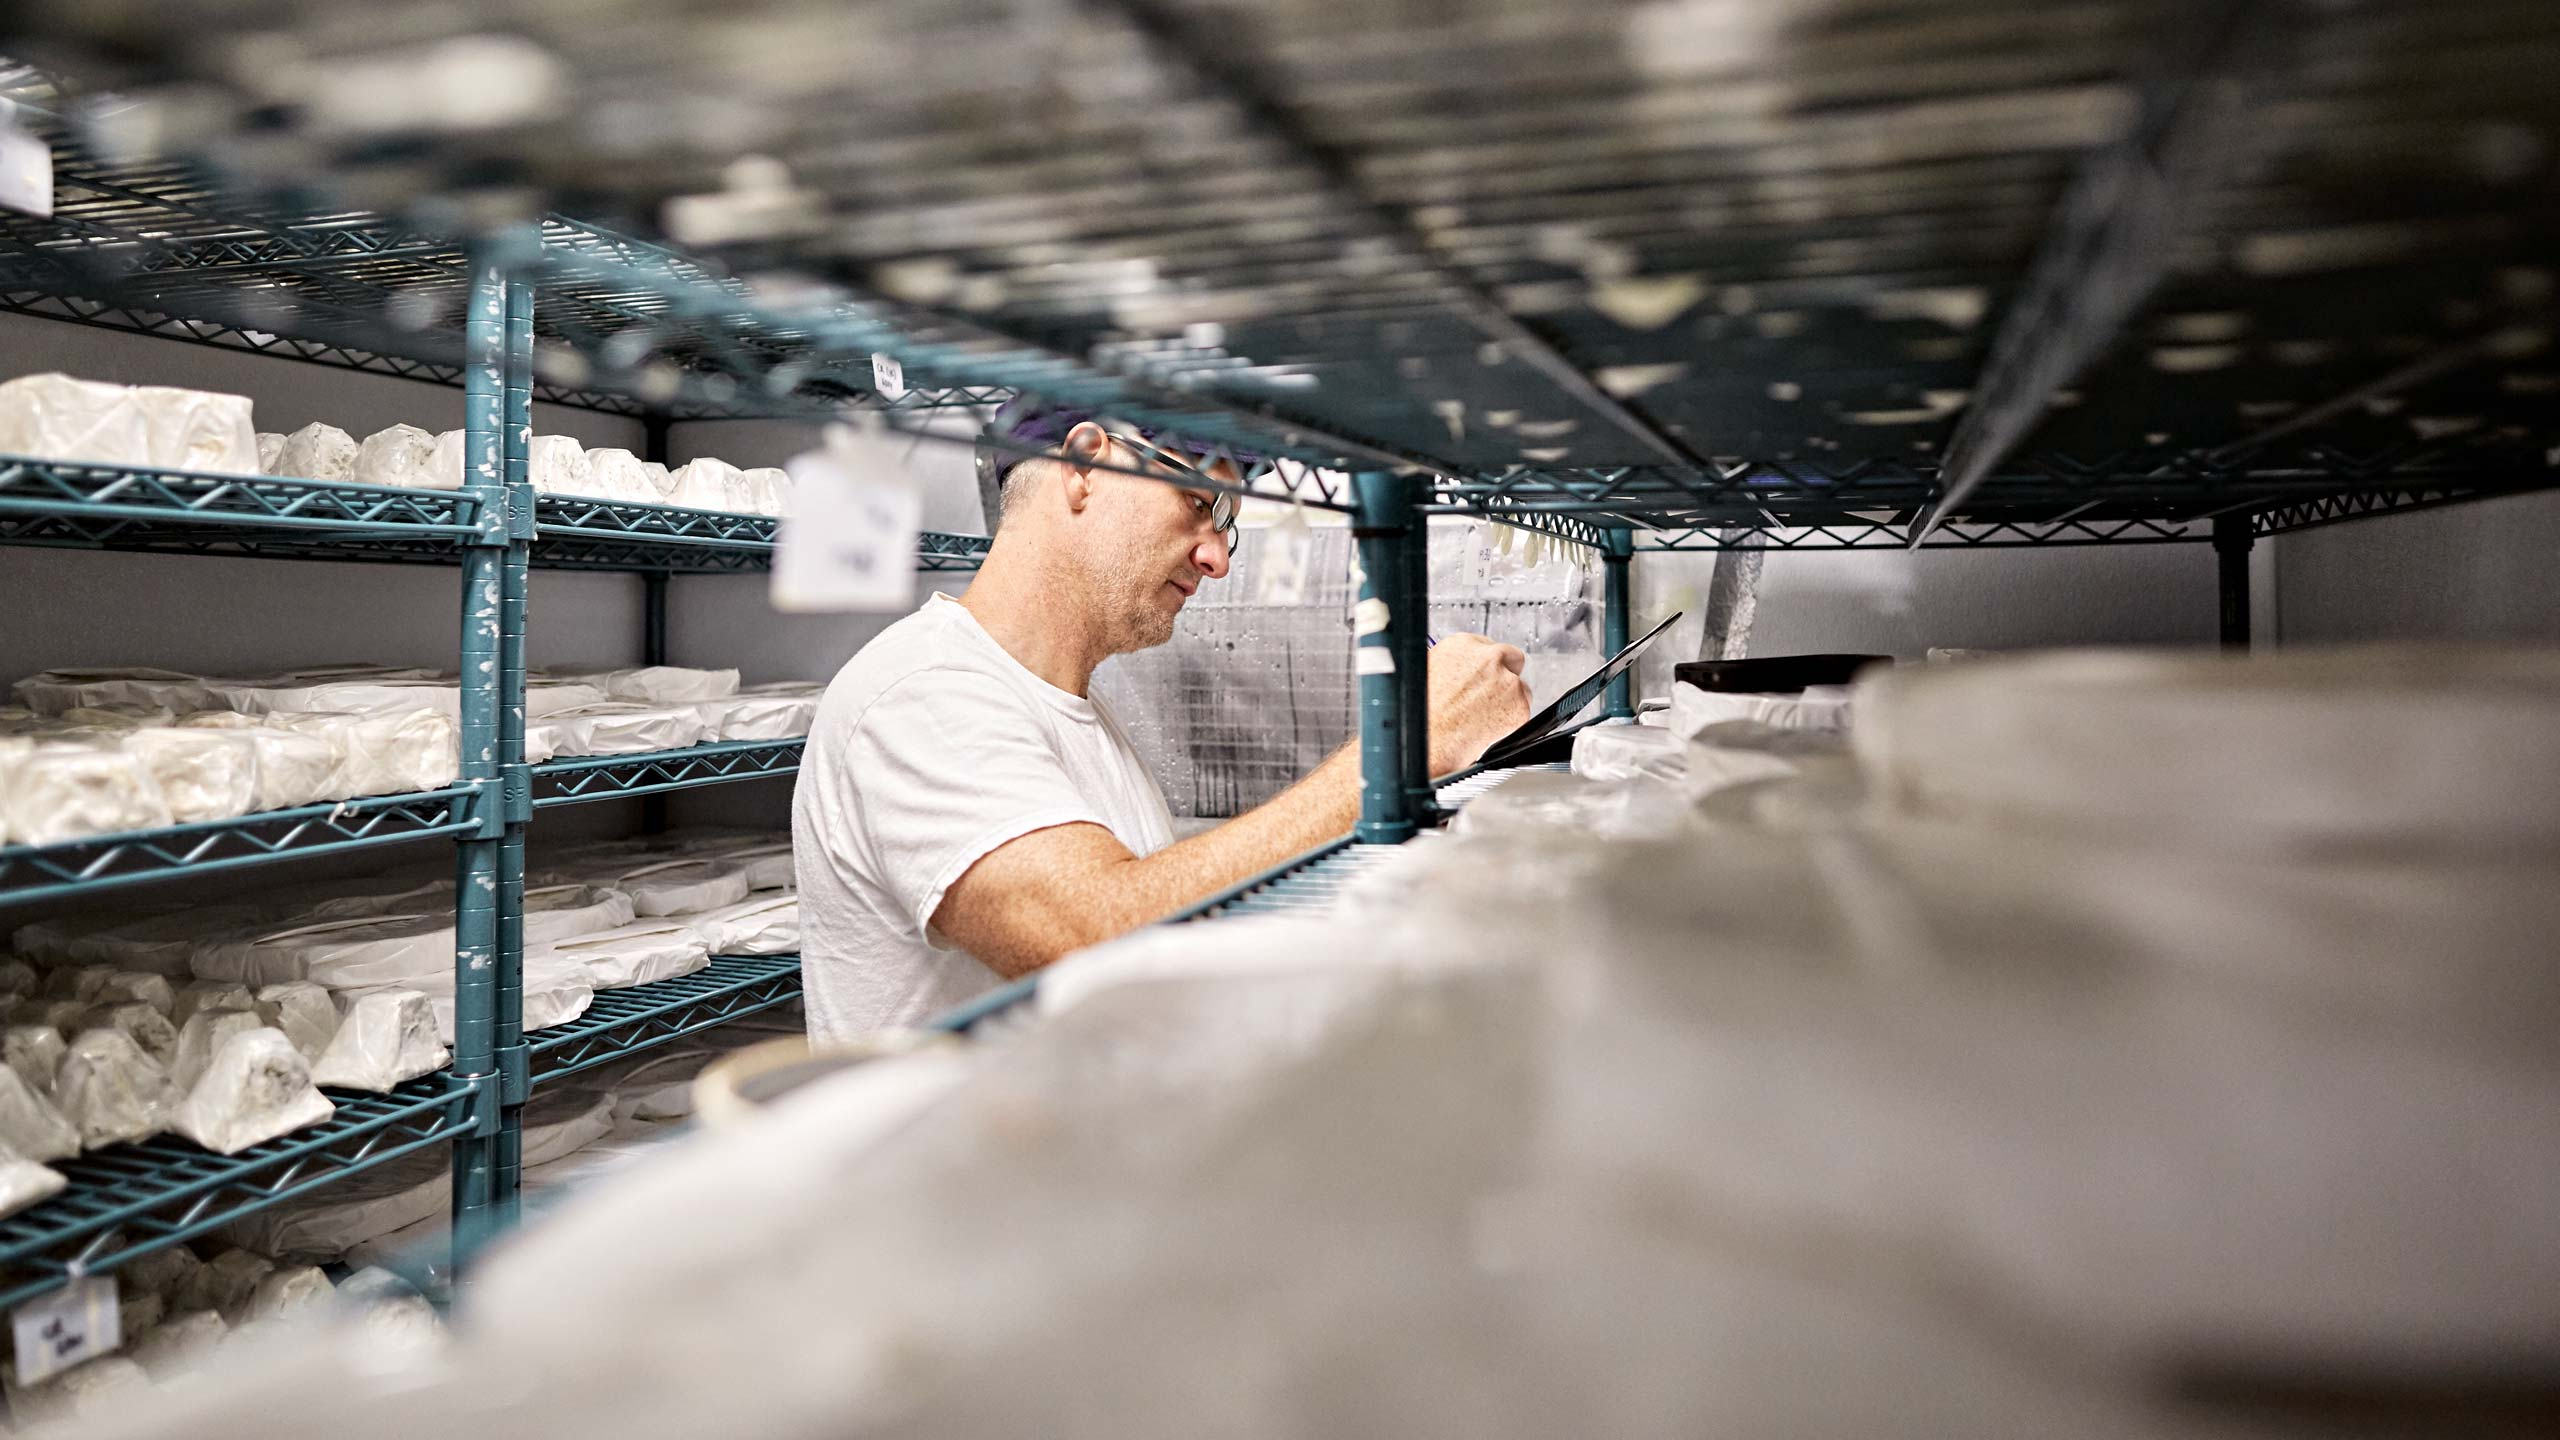 Cheesemaker checks on cheeses in Atlanta dairy. Nick Burchell photographer